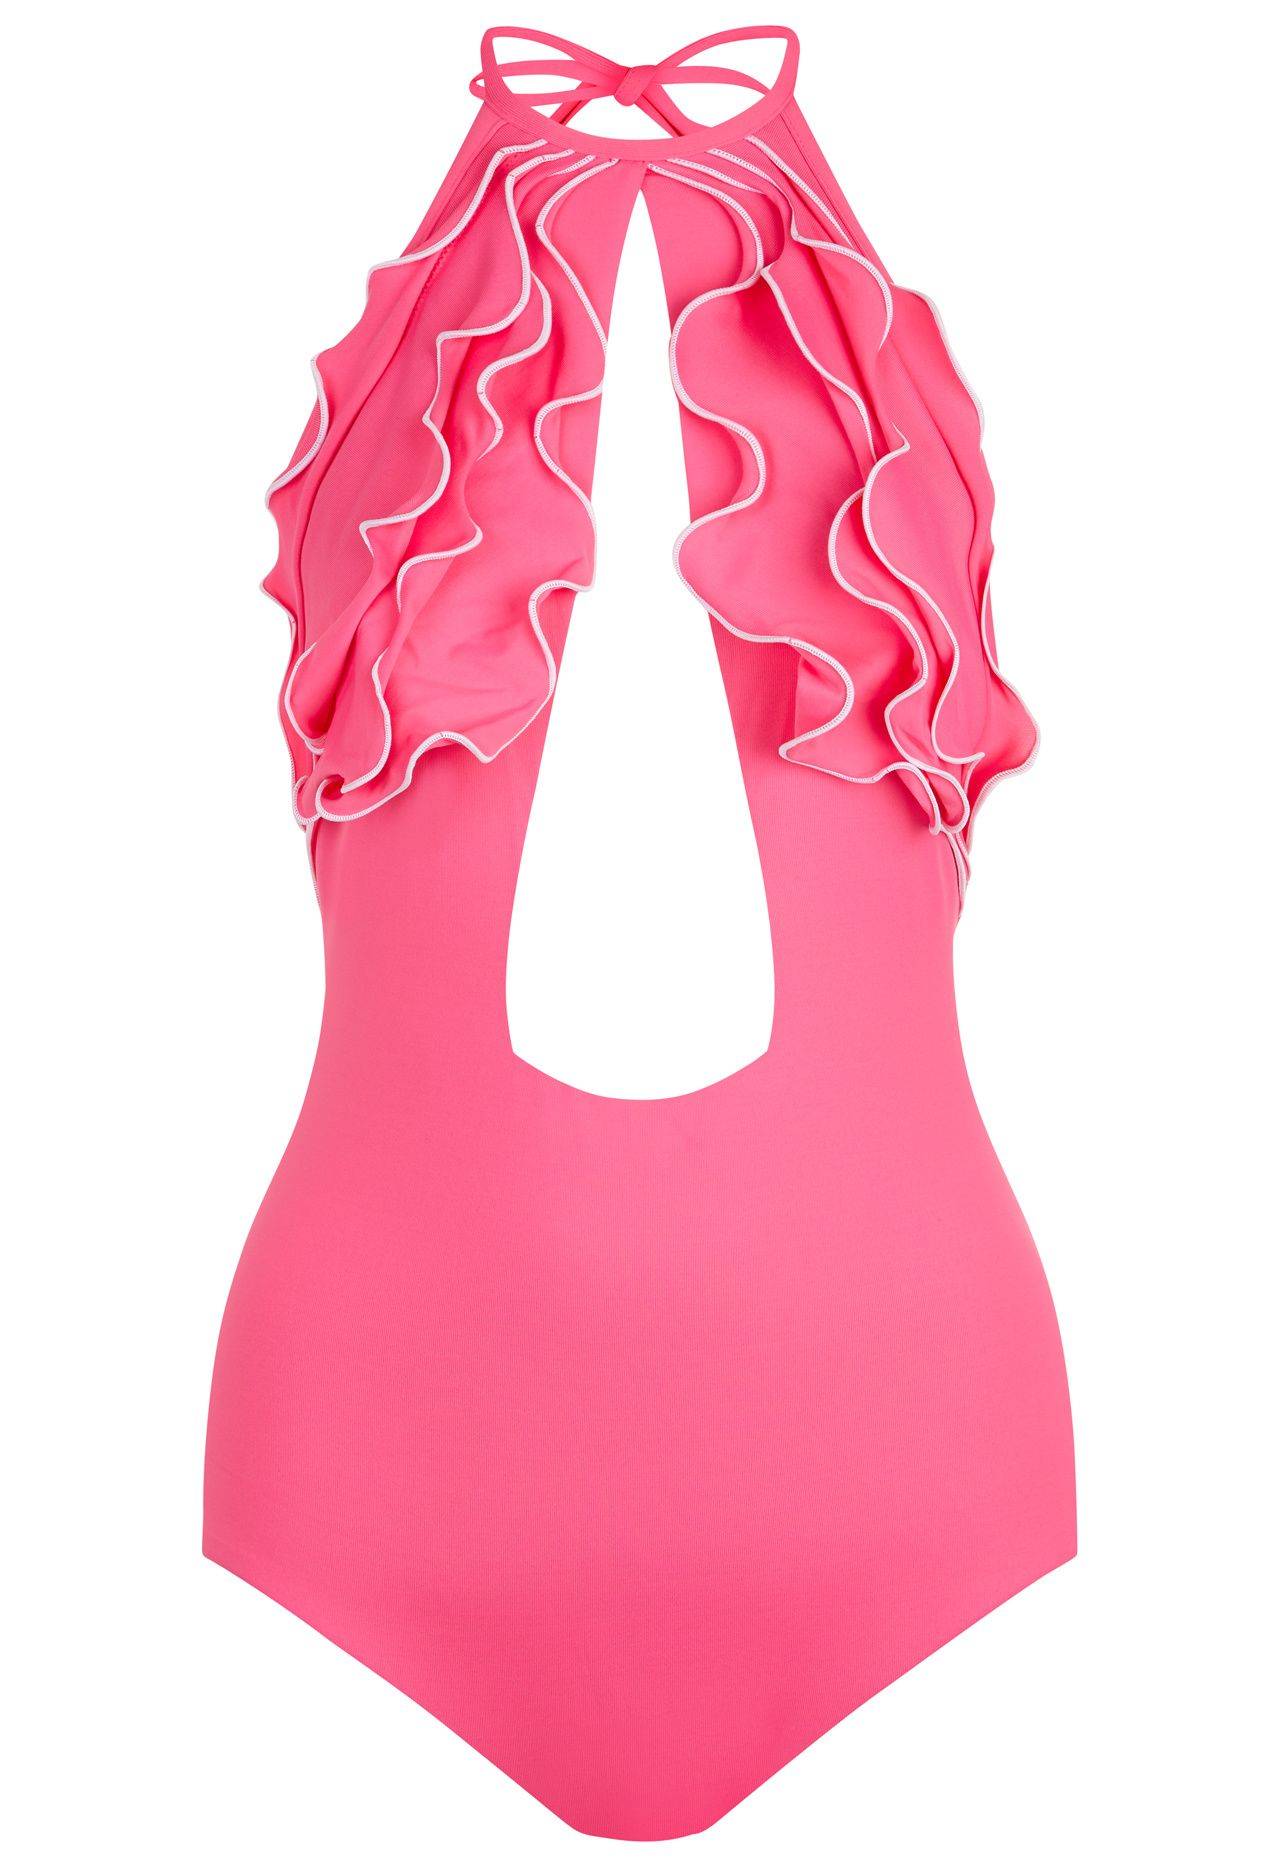 Waves La Perla Pink Halter Neck Cut Out Swimsuit With Ruffles